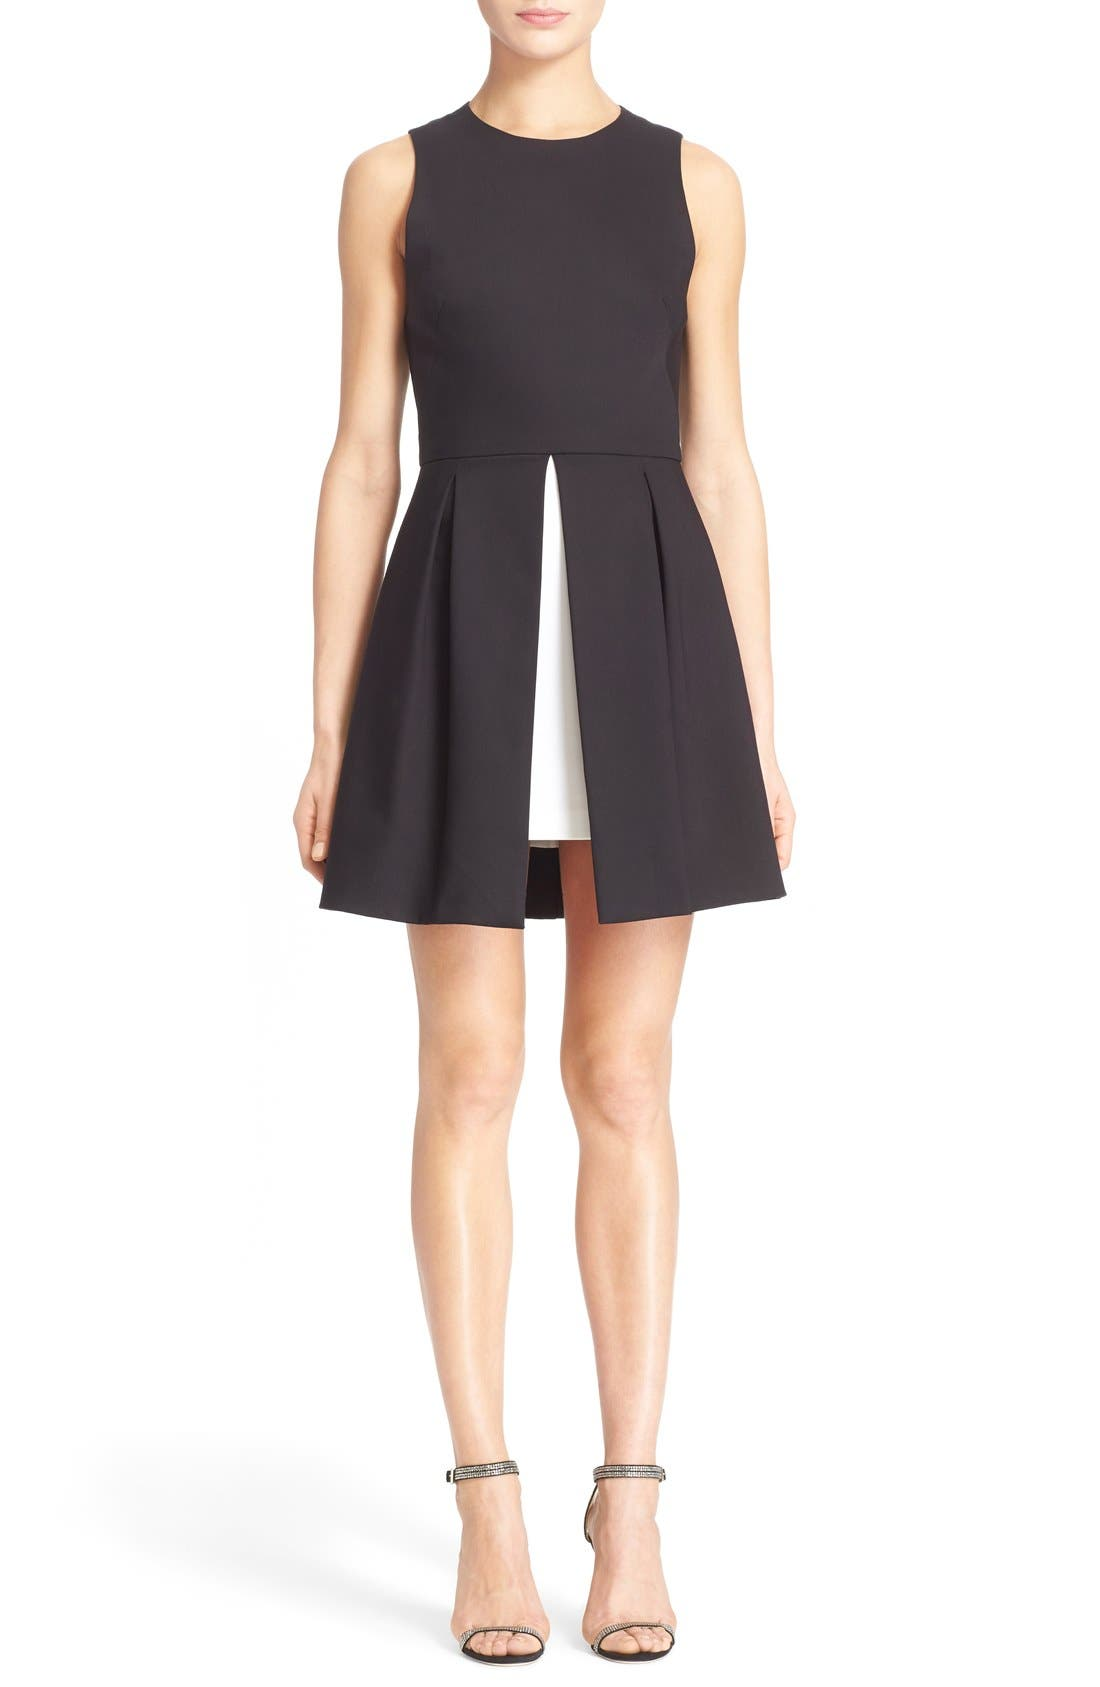 Main Image - Alice + Olivia 'Bria' Peplum Fit & Flare Dress